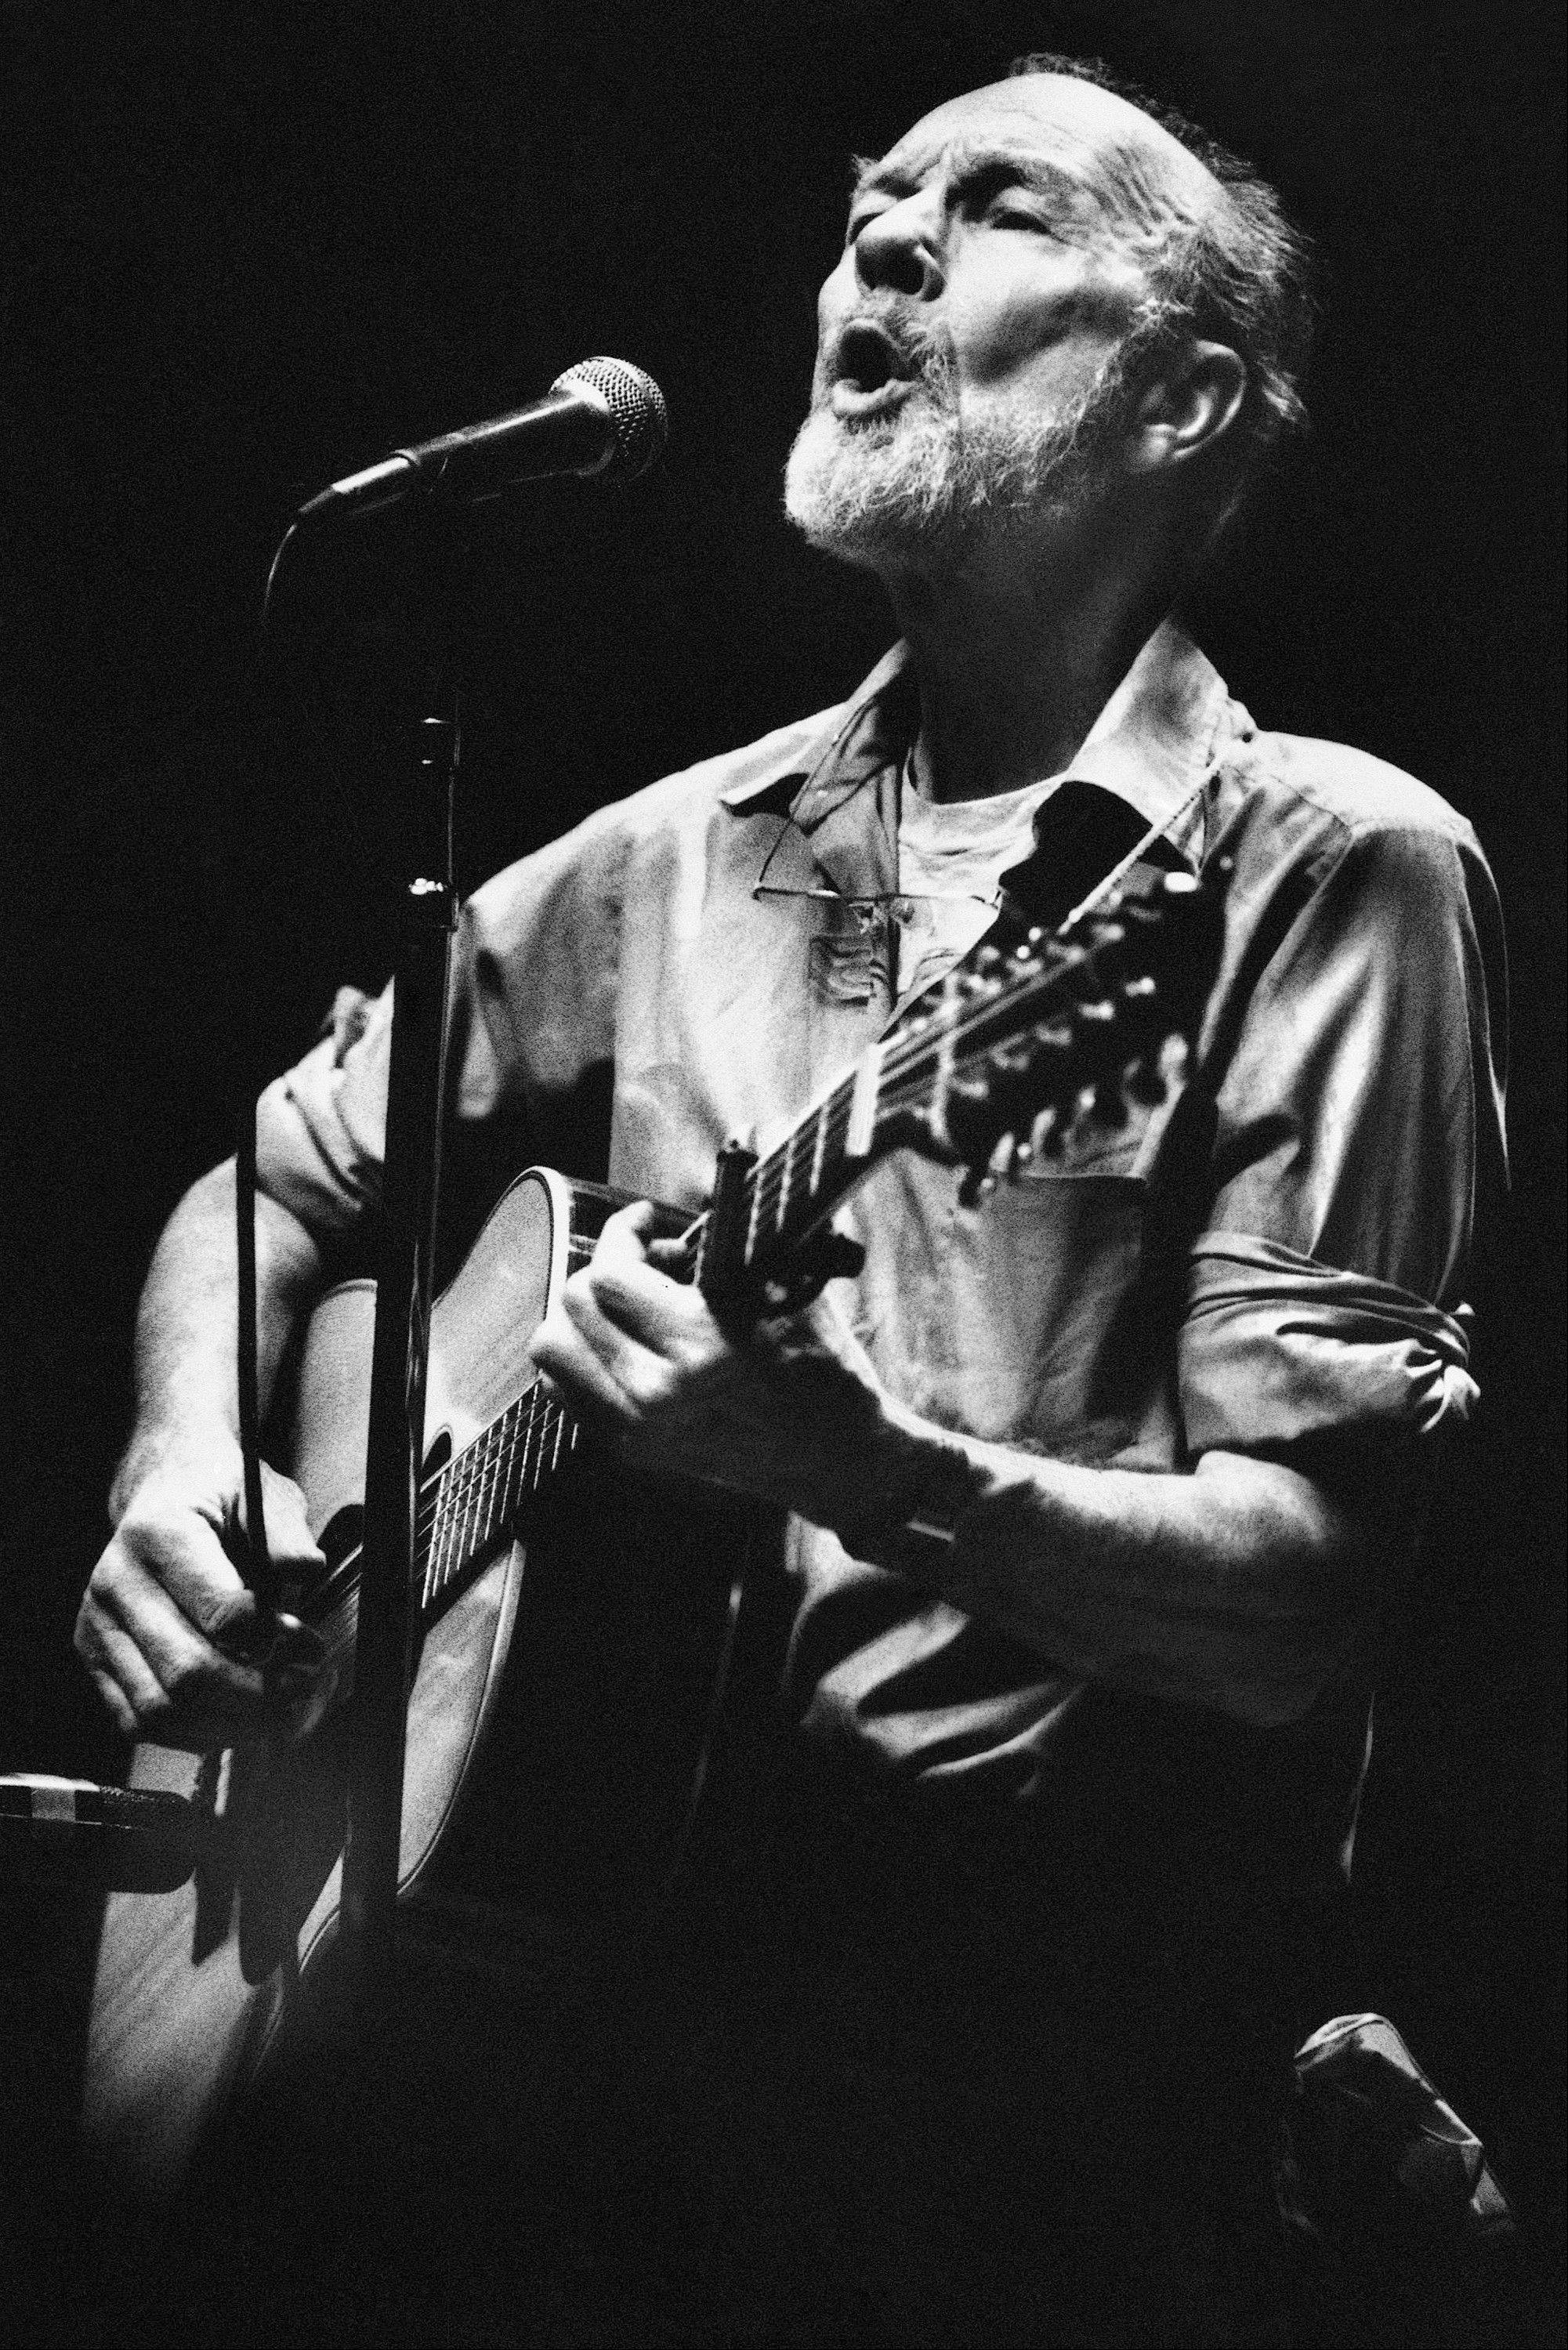 Folk singer Pete Seeger performed in a one-man benefit concert in Berkeley, Calif., at the Berkeley Community Theater in 1984. The American troubadour, folk singer and activist died Monday.